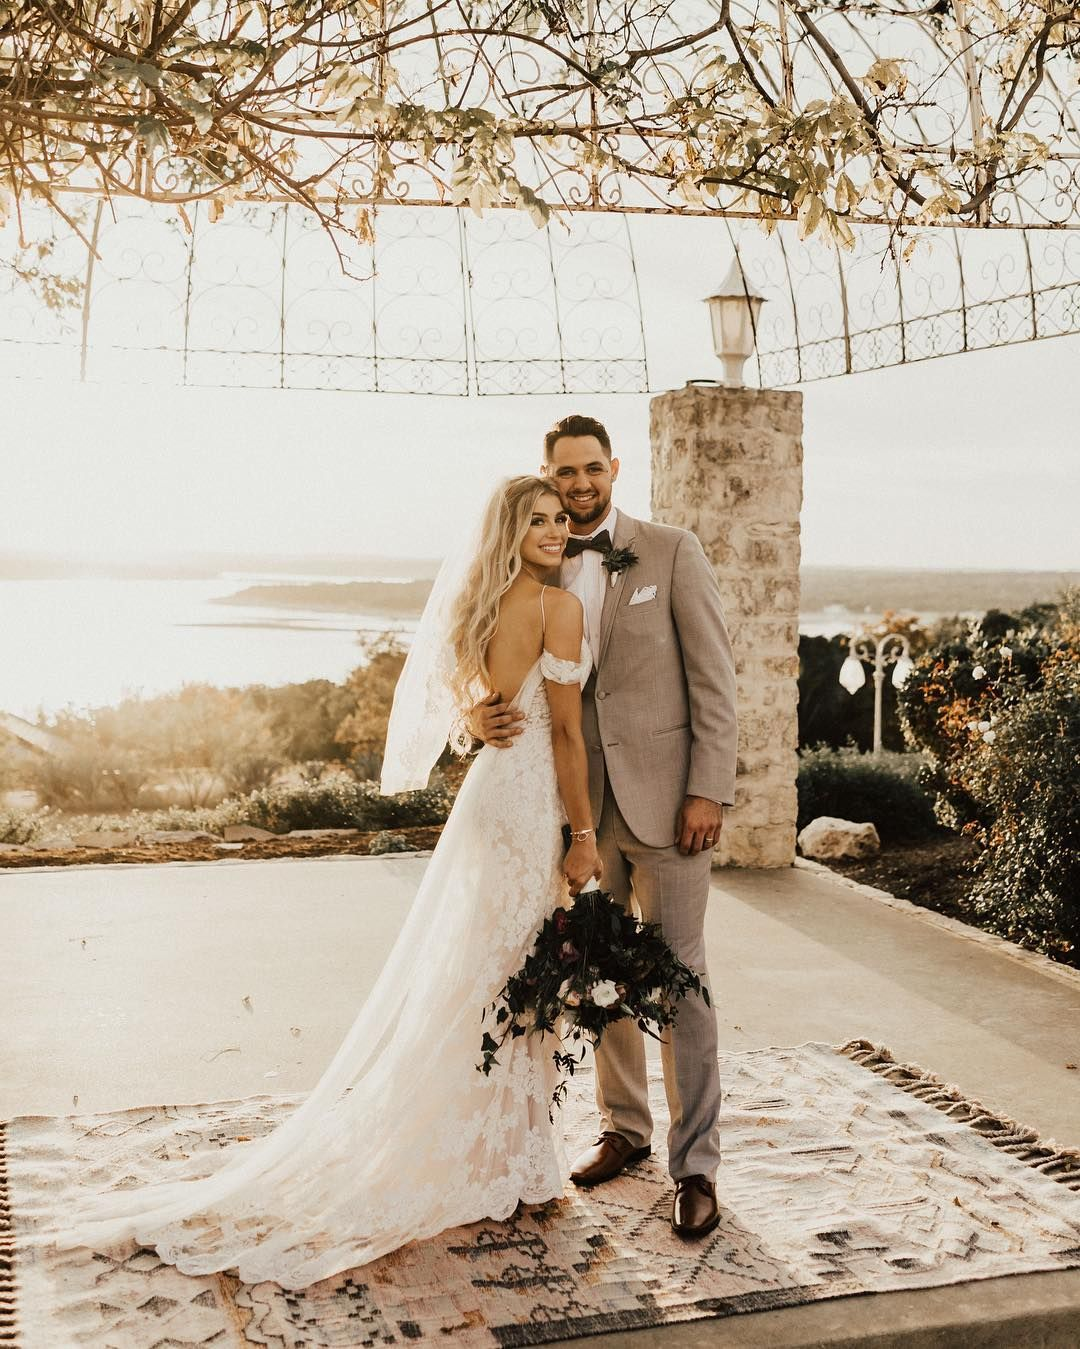 Boho Austin Texas Wedding At Vintage Villas Texas Wedding Photographer Wedding Dresses Wedding